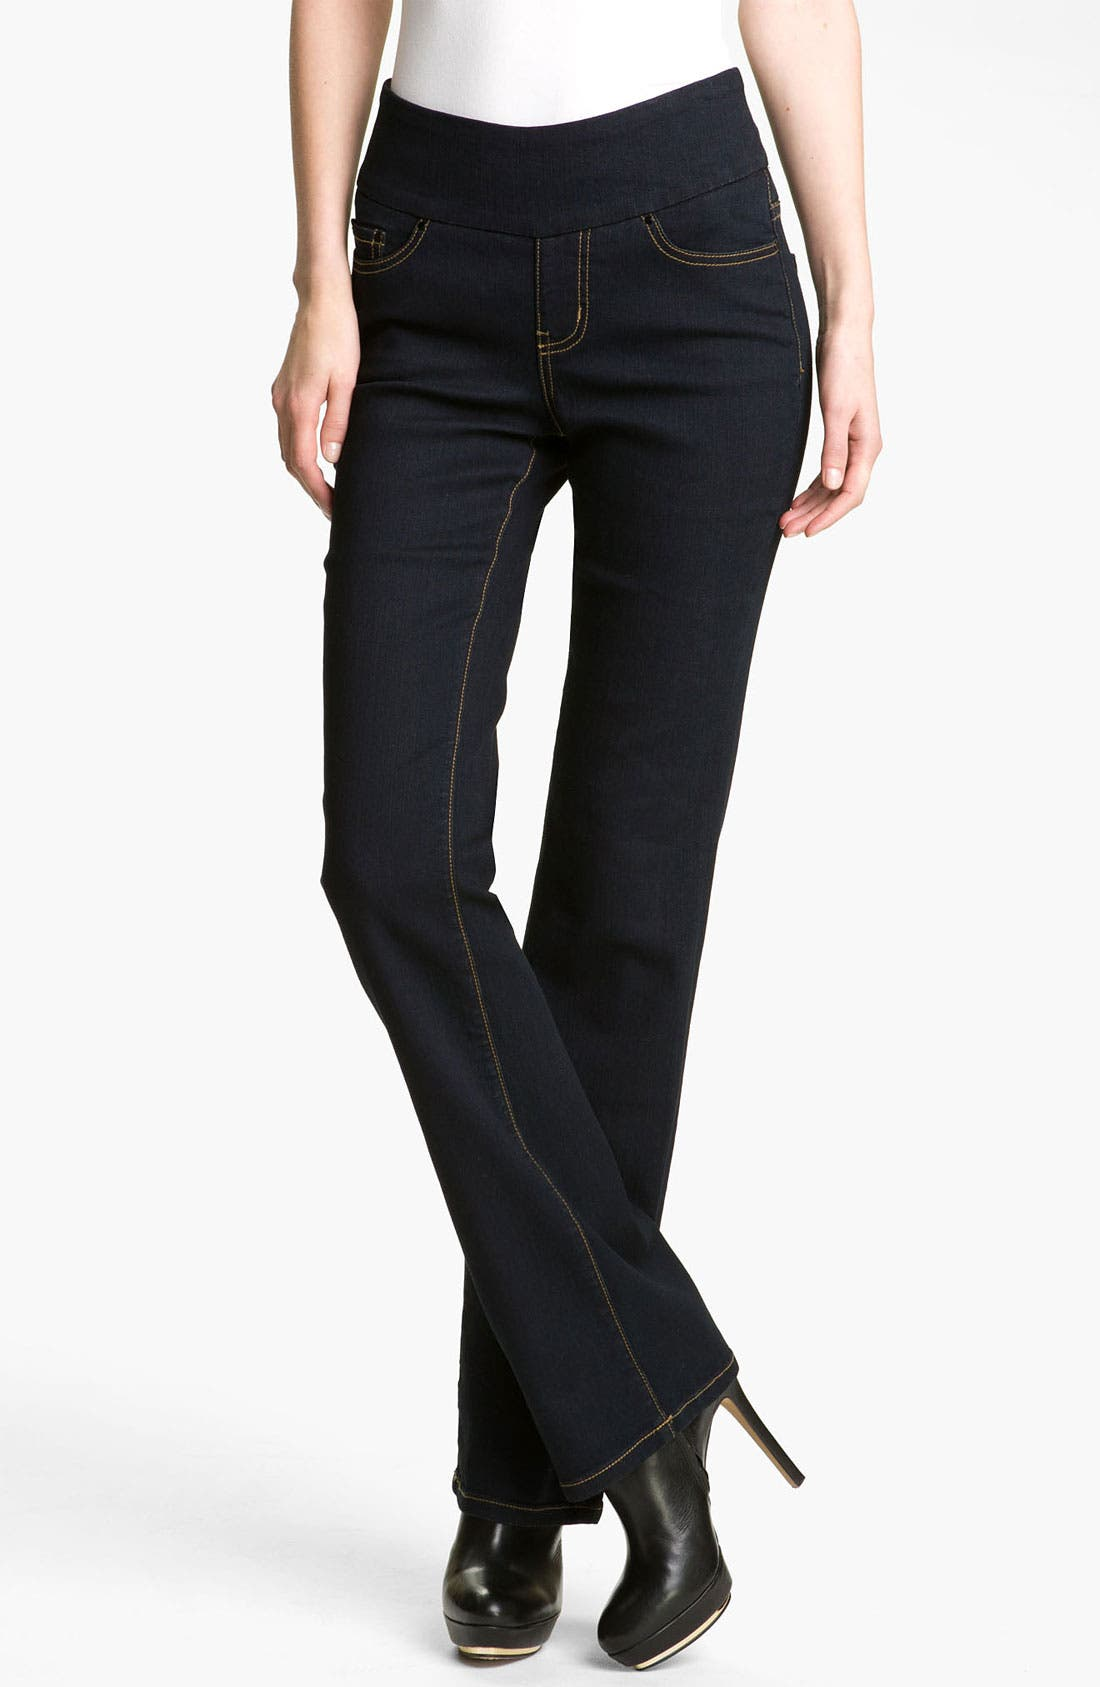 Main Image - Jag Jeans 'Paley' Pull-On Jeans (Petite)